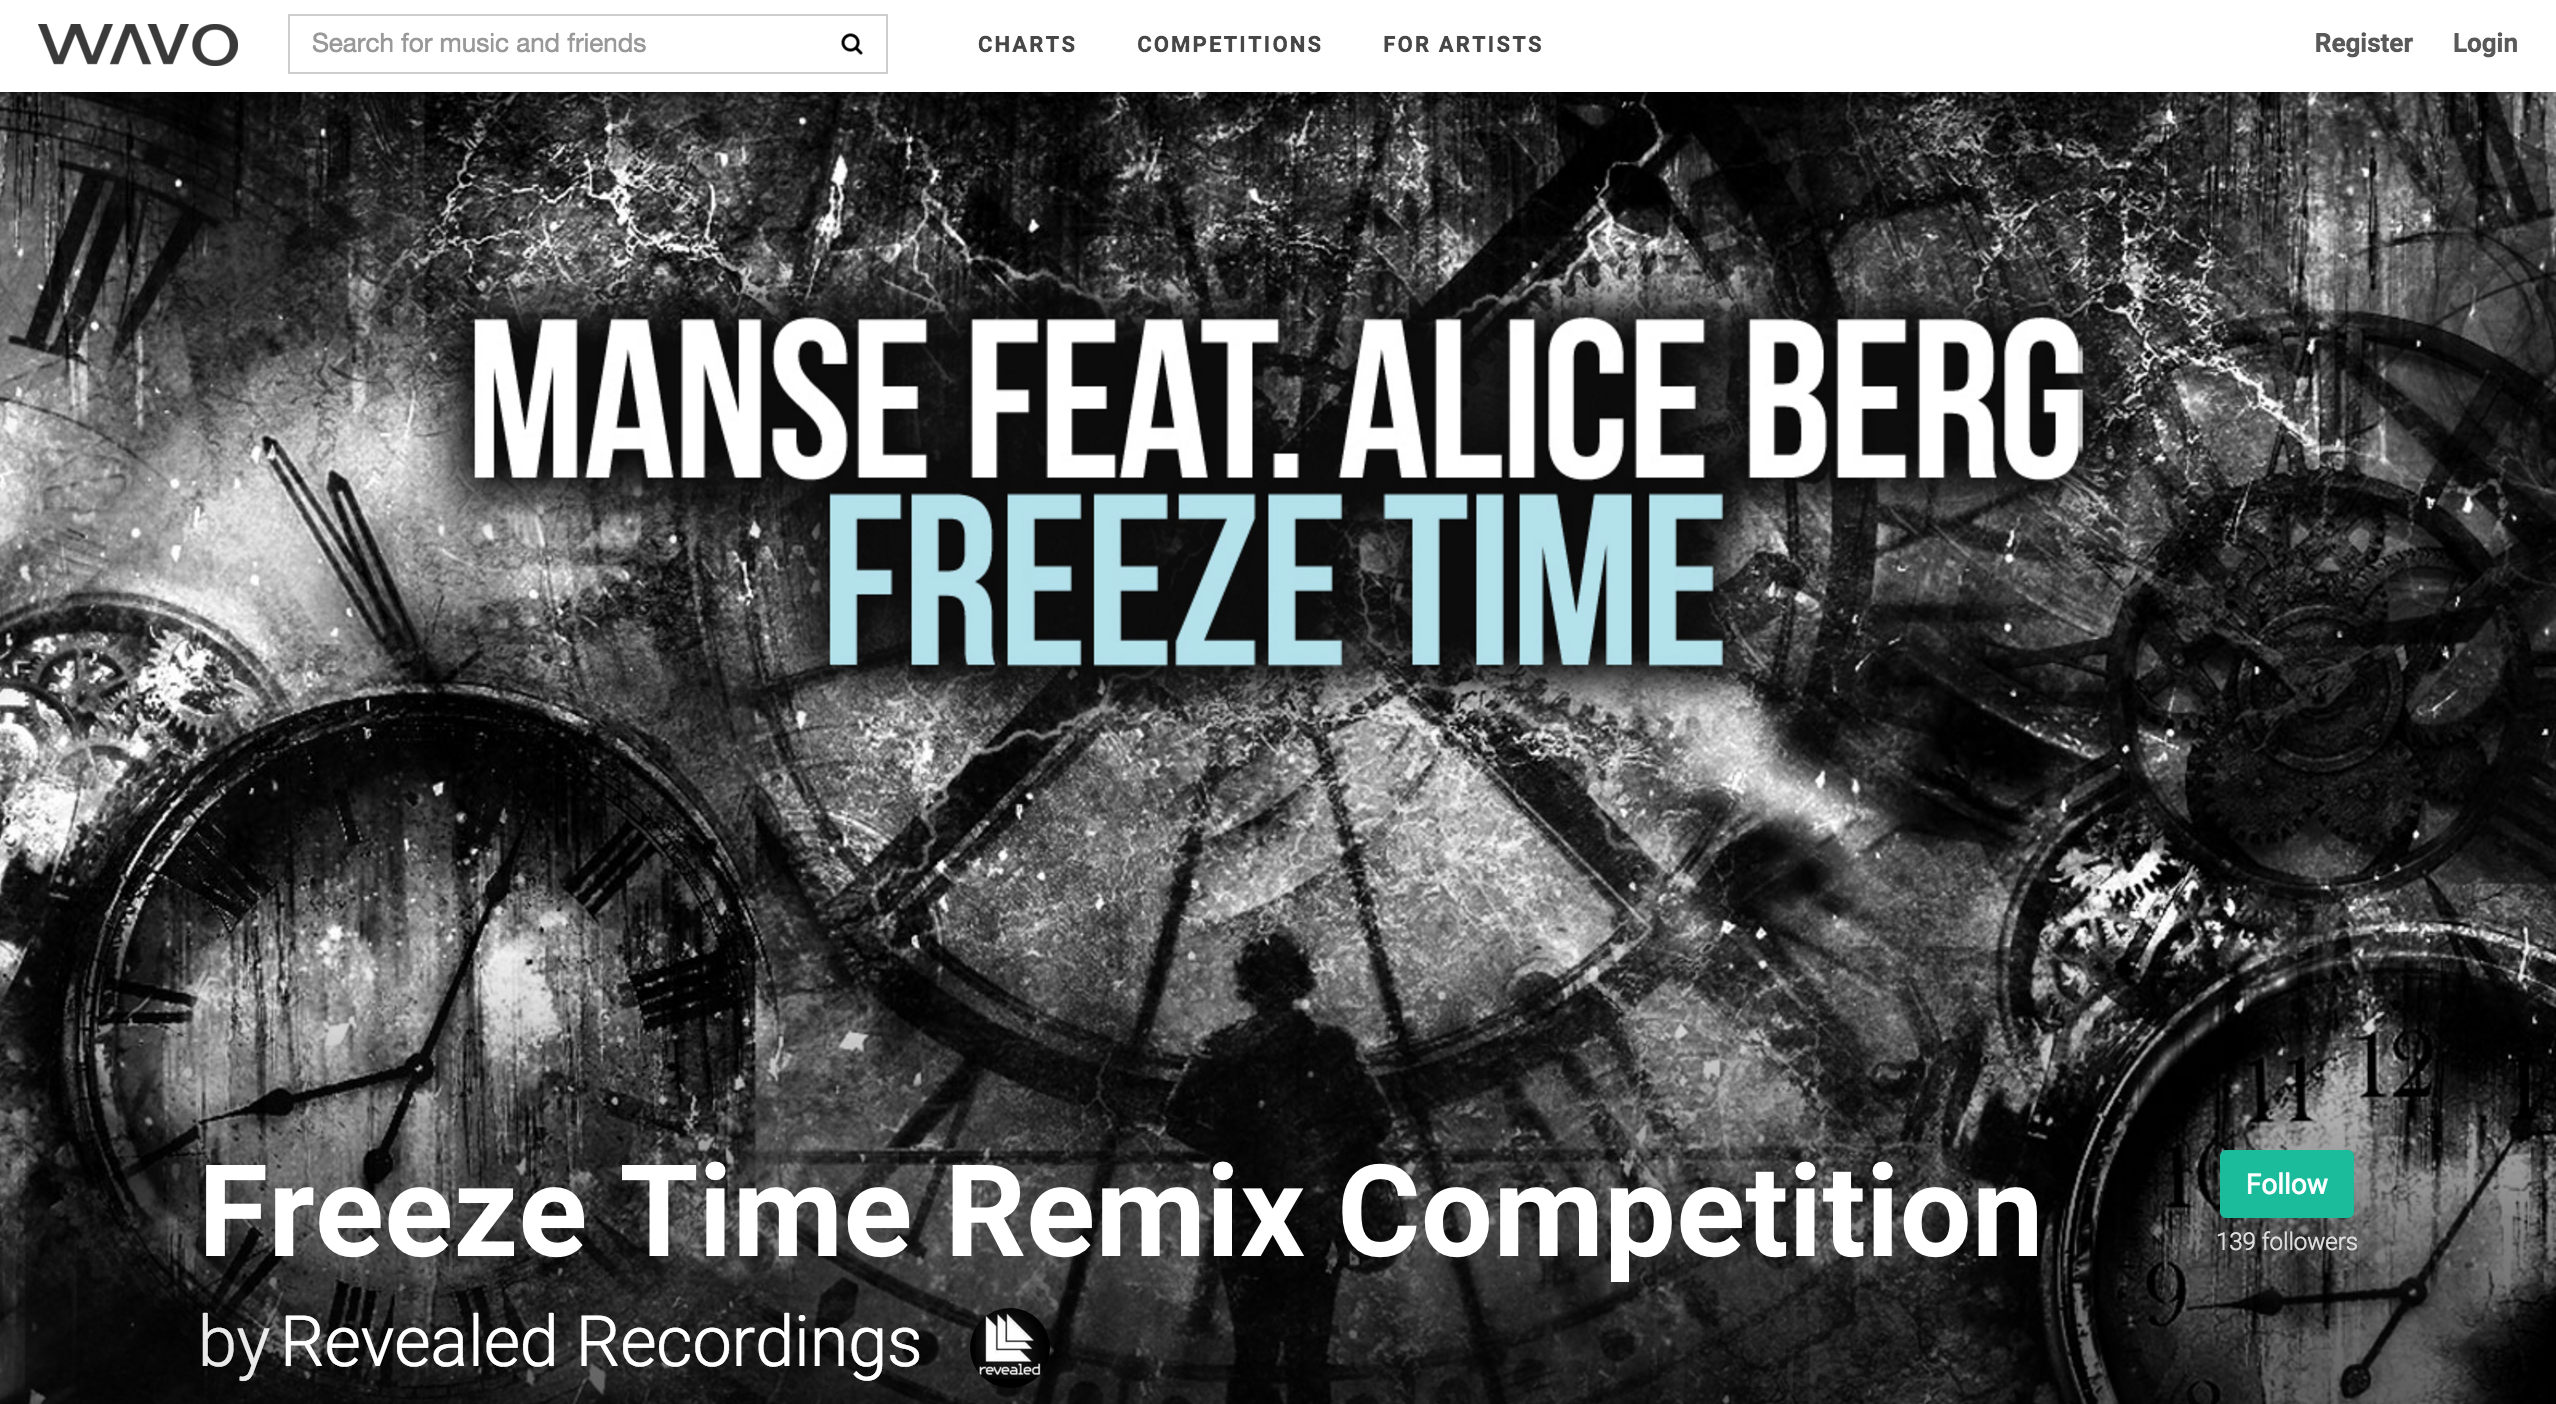 MANSE & REVEALED RECORDINGS ANNOUNCE 'FREEZE TIME' REMIX COMPETITION